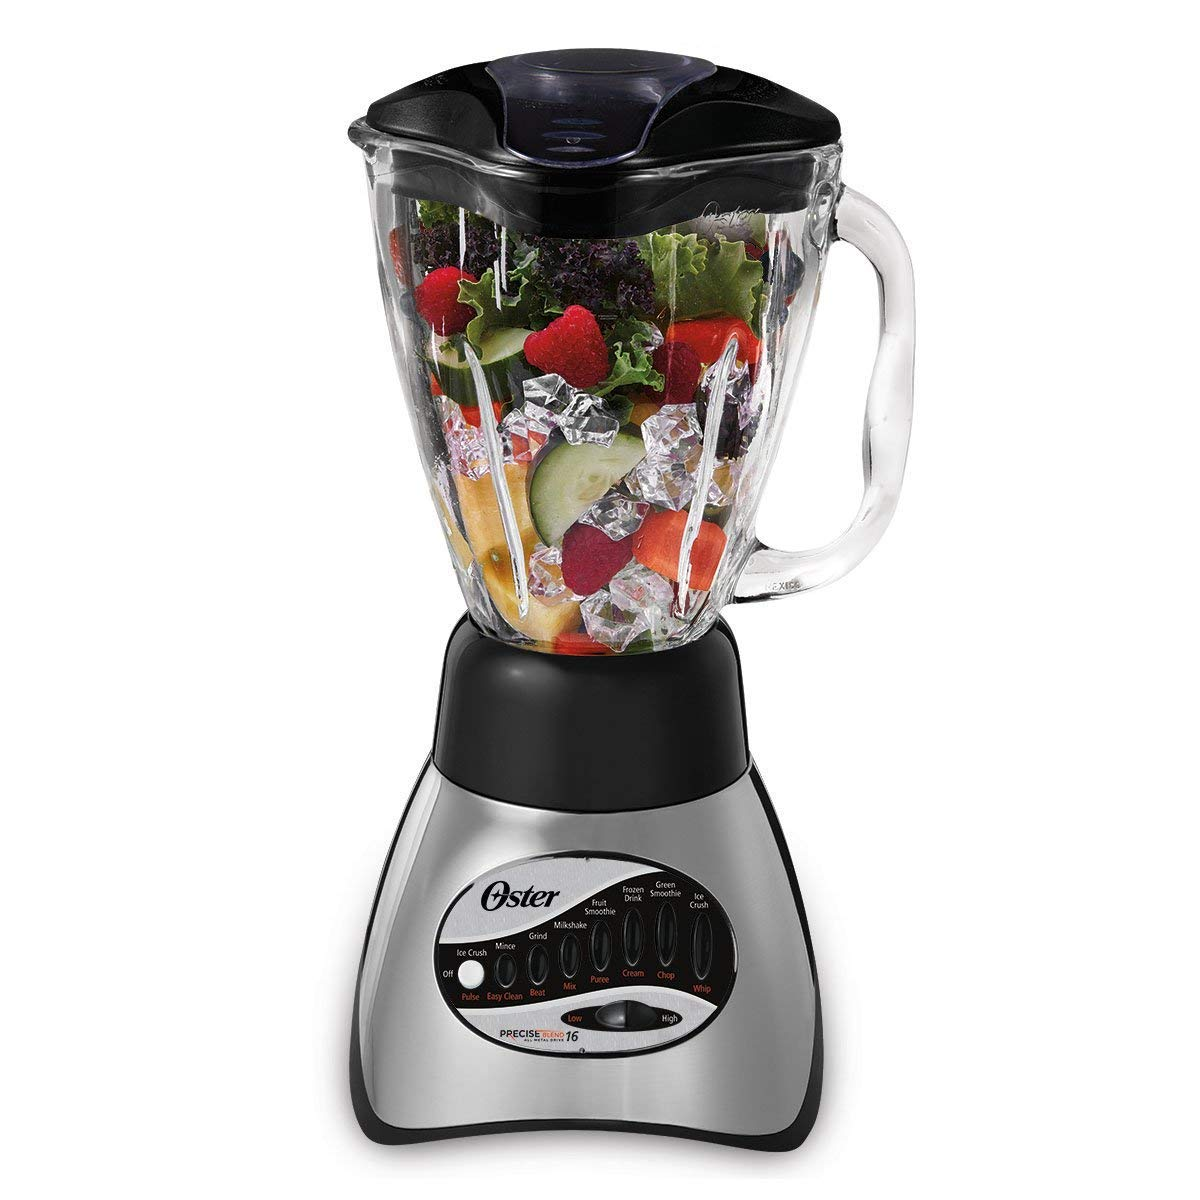 Oster 6812-001 Core 16-Speed Blender with Glass Jar, Black by Oster